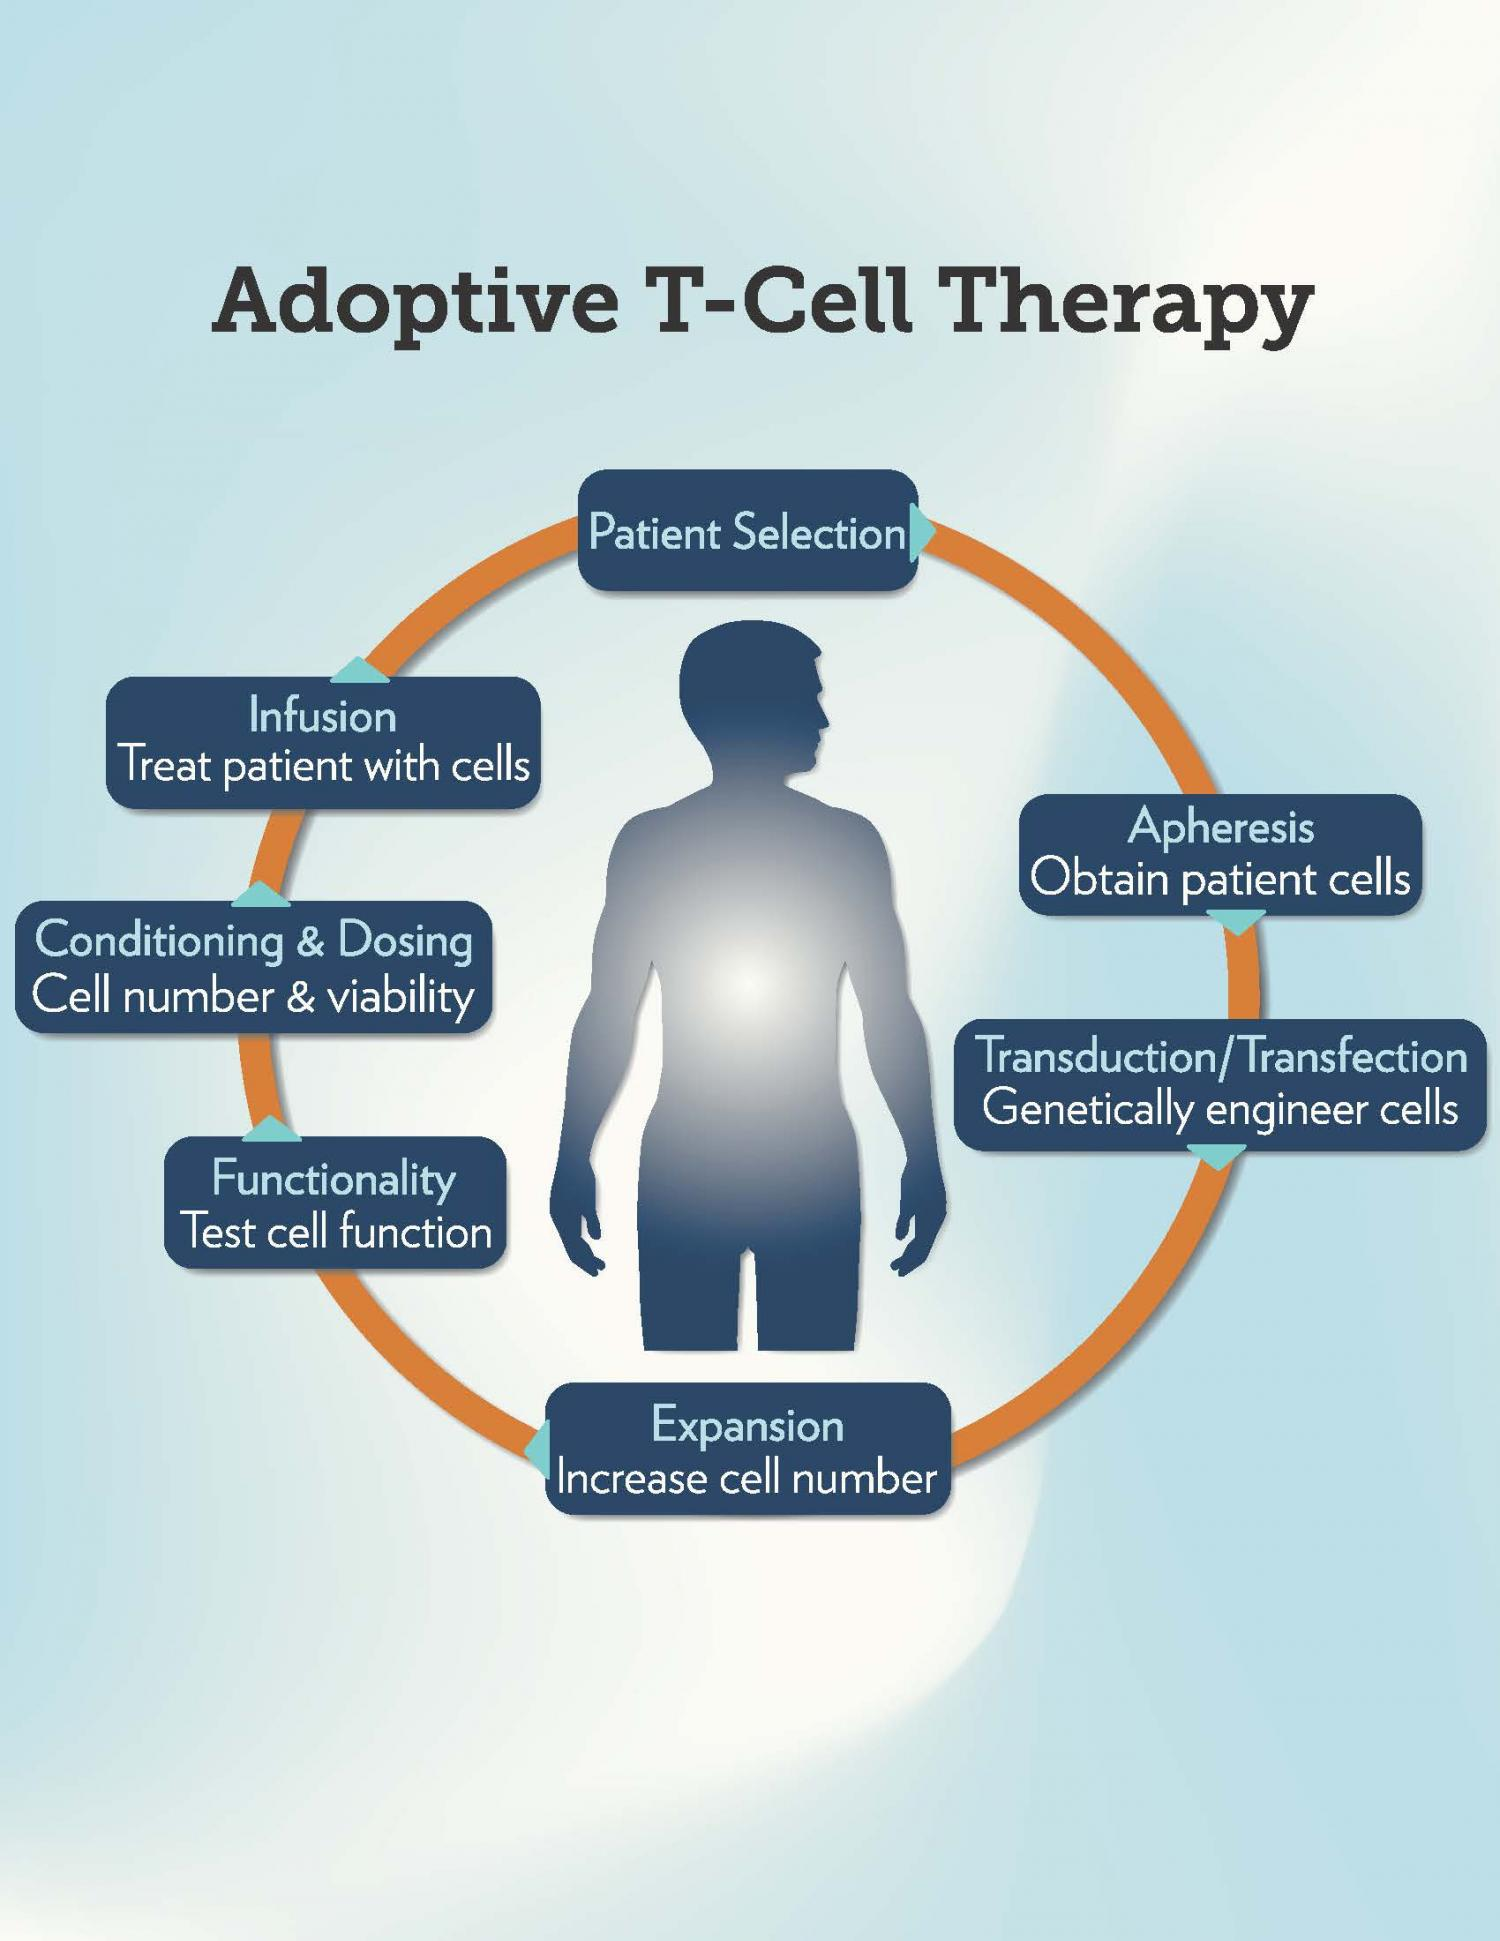 N acetyl cysteine improves efficacy of adoptive T cell